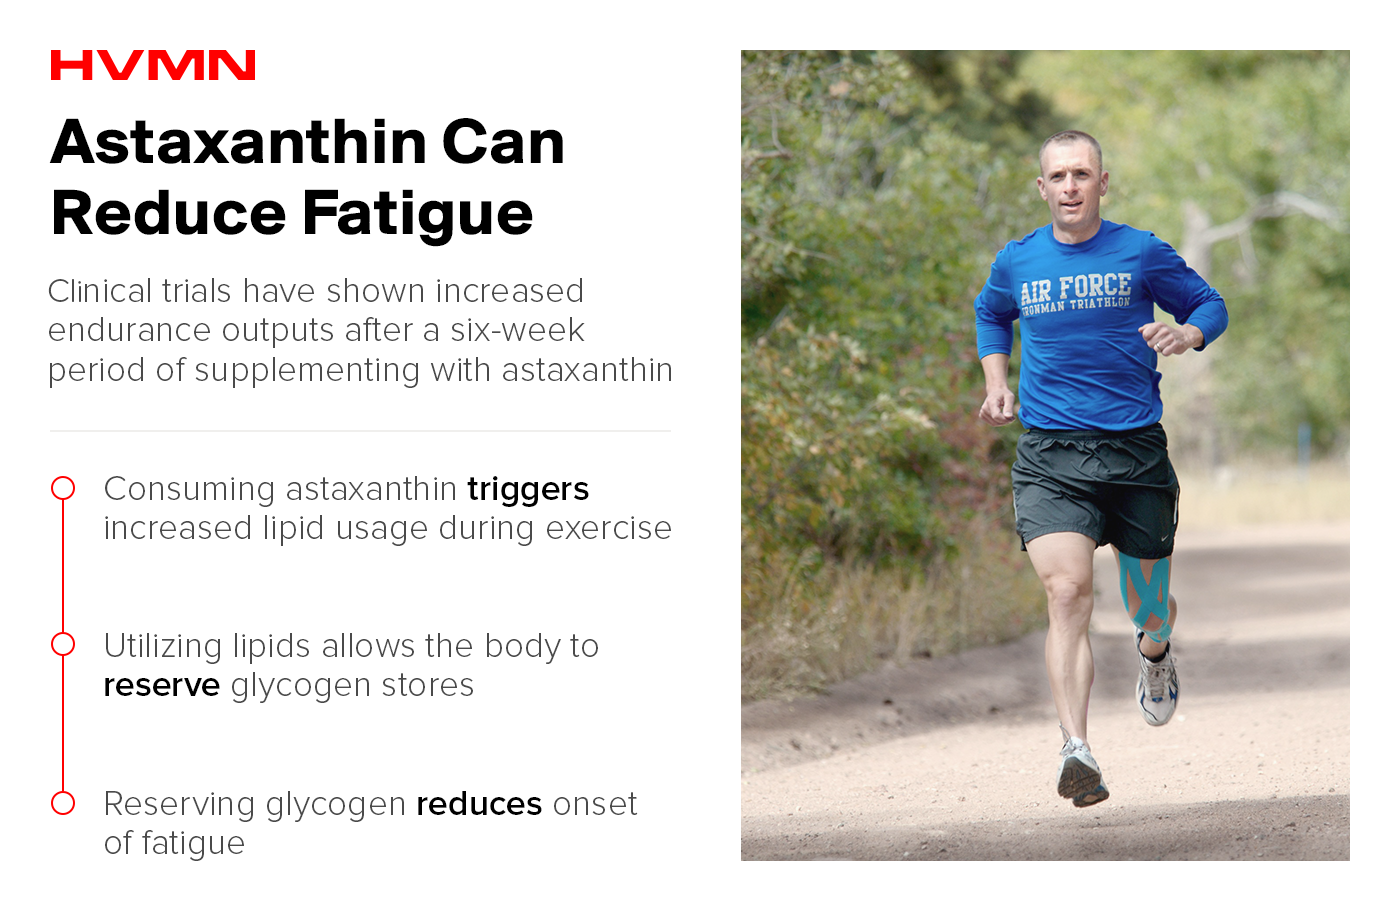 A man running on a trail showing astaxanthin can reduce fatigue.